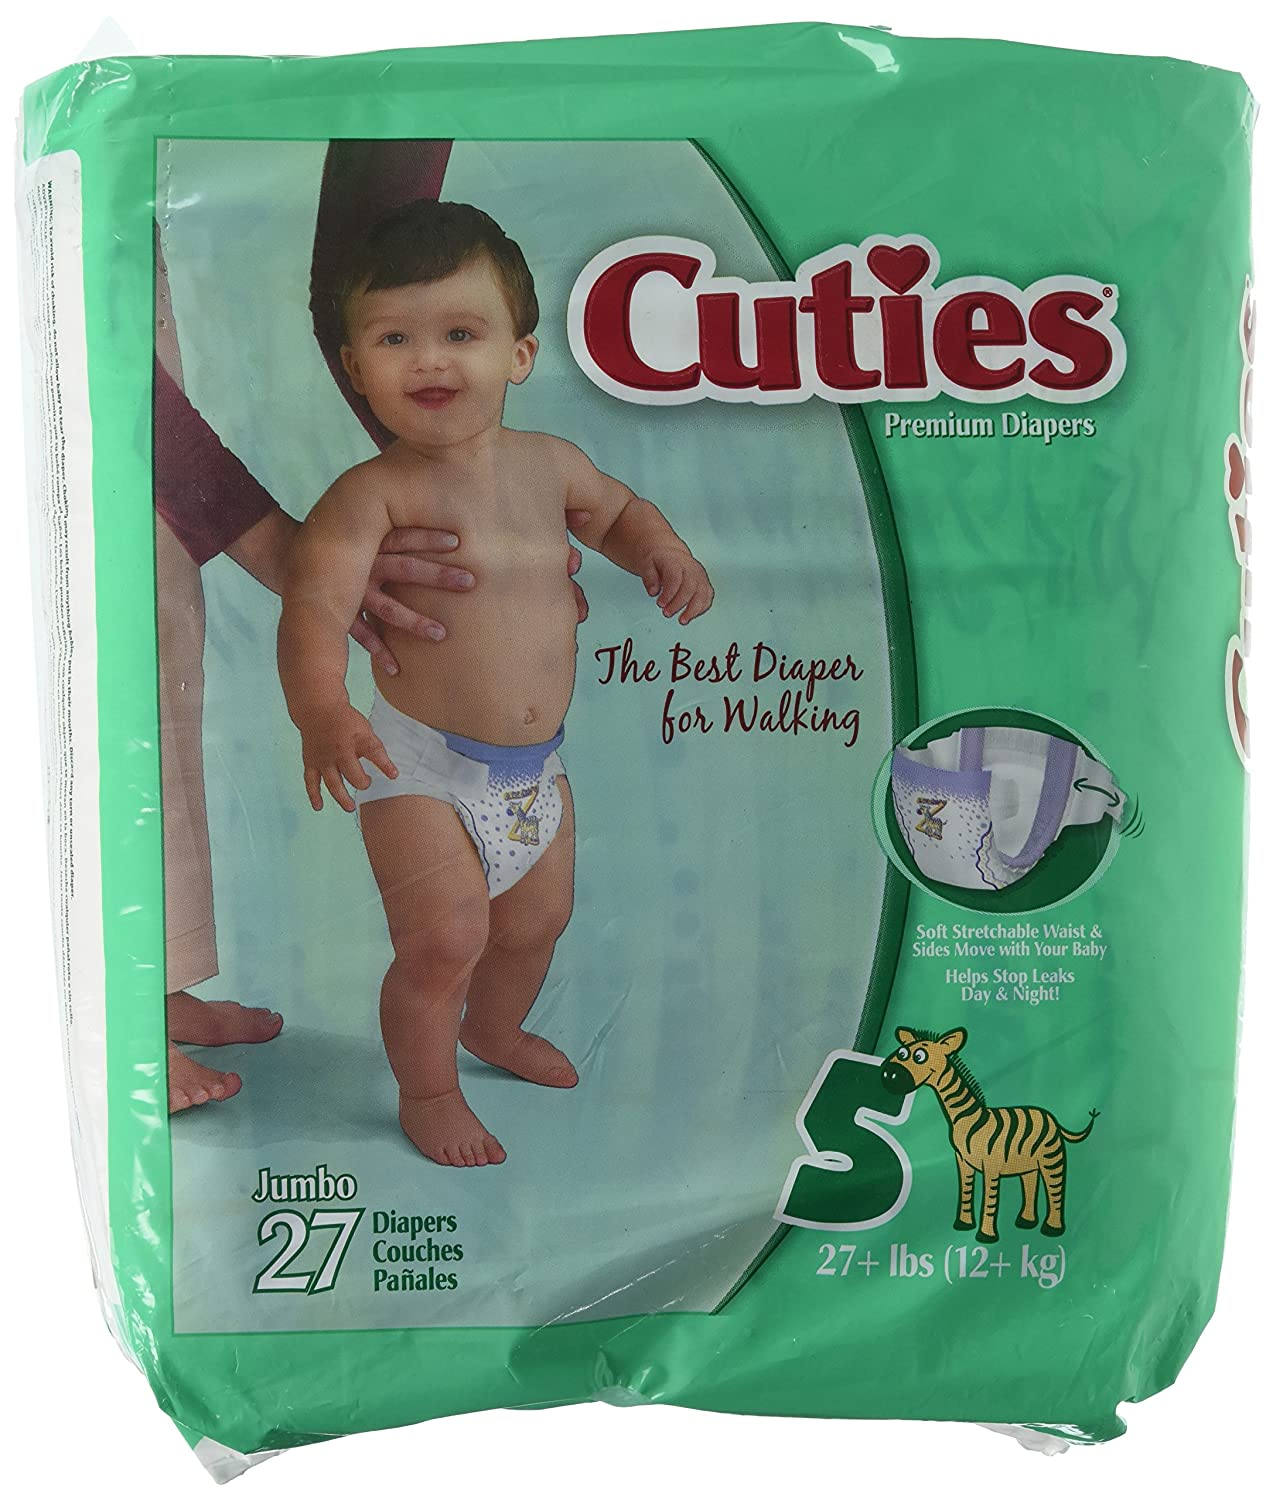 Amazon.com: Cuties - CR1001 - Prevail Cuties Baby Diapers Size 1, 8-14 lbs.: Health & Personal Care